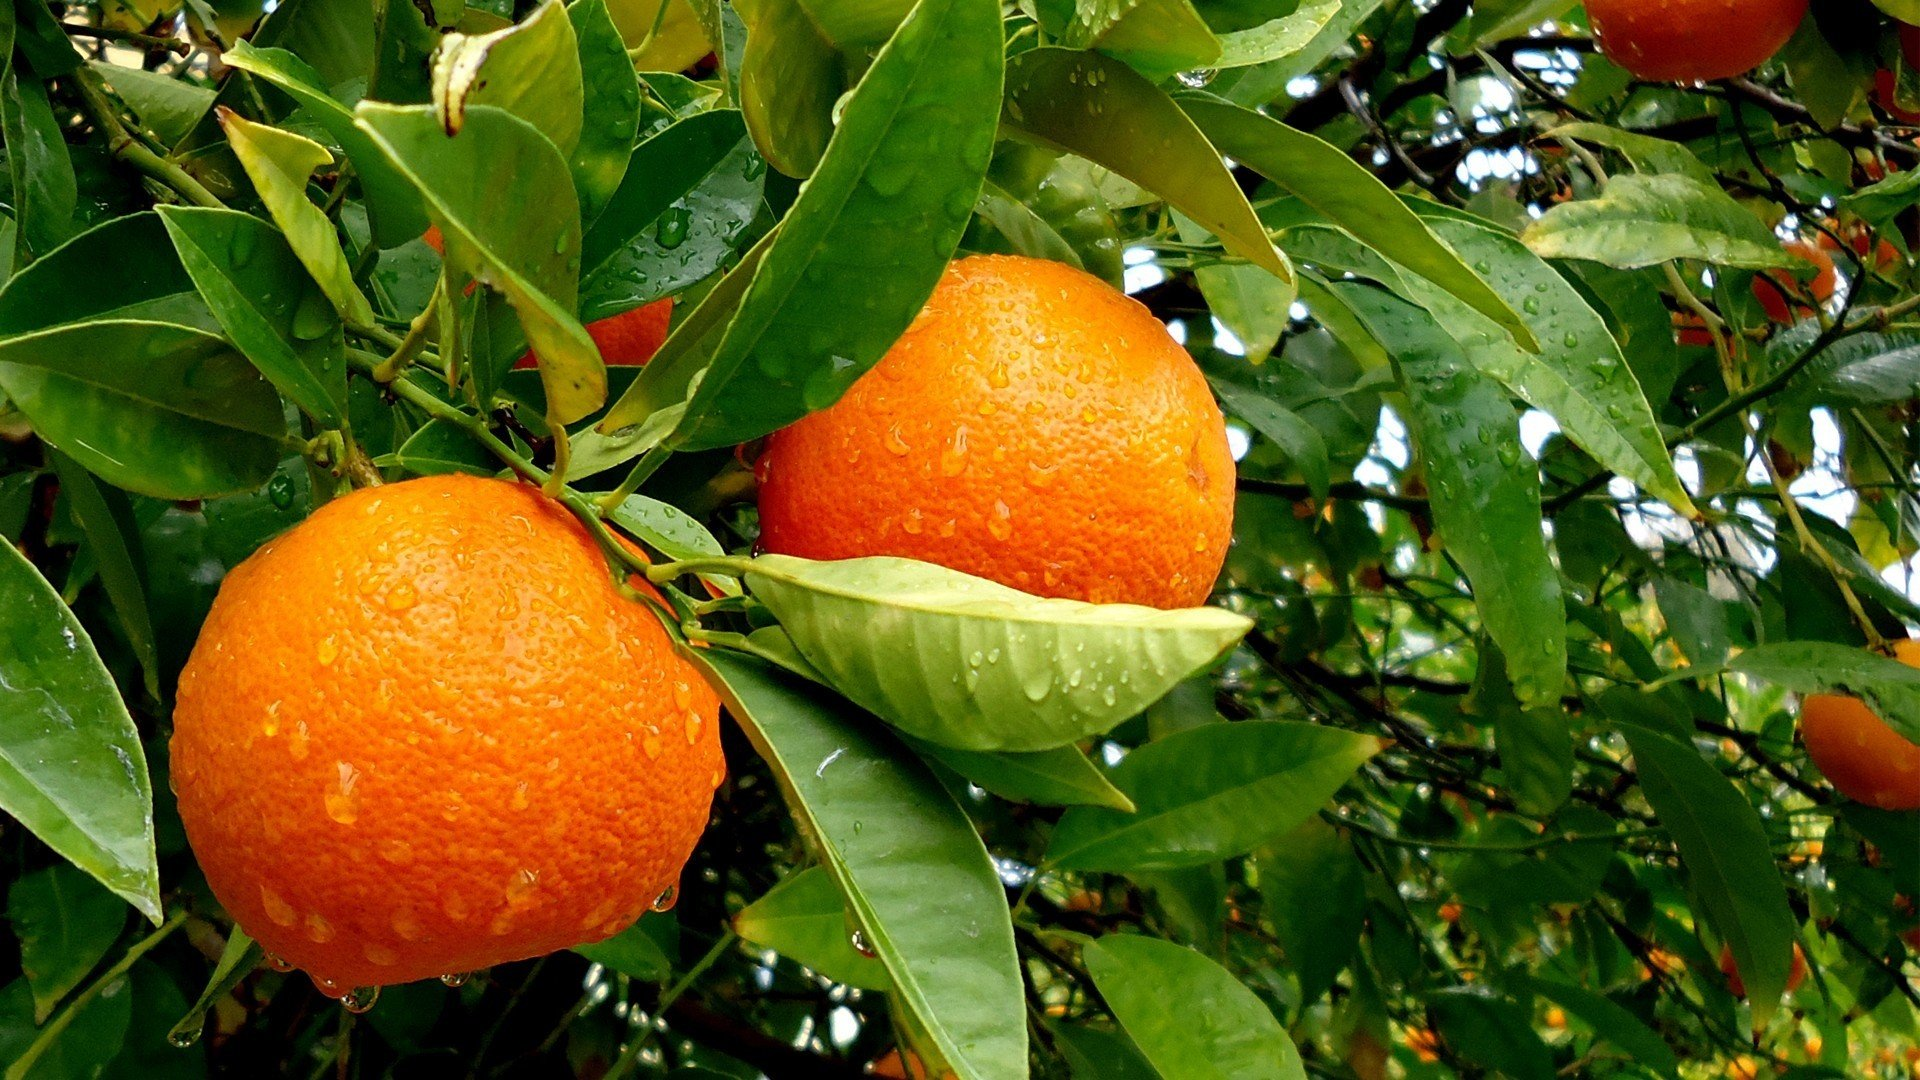 fruits leaves oranges water drops fruit trees wallpaper background